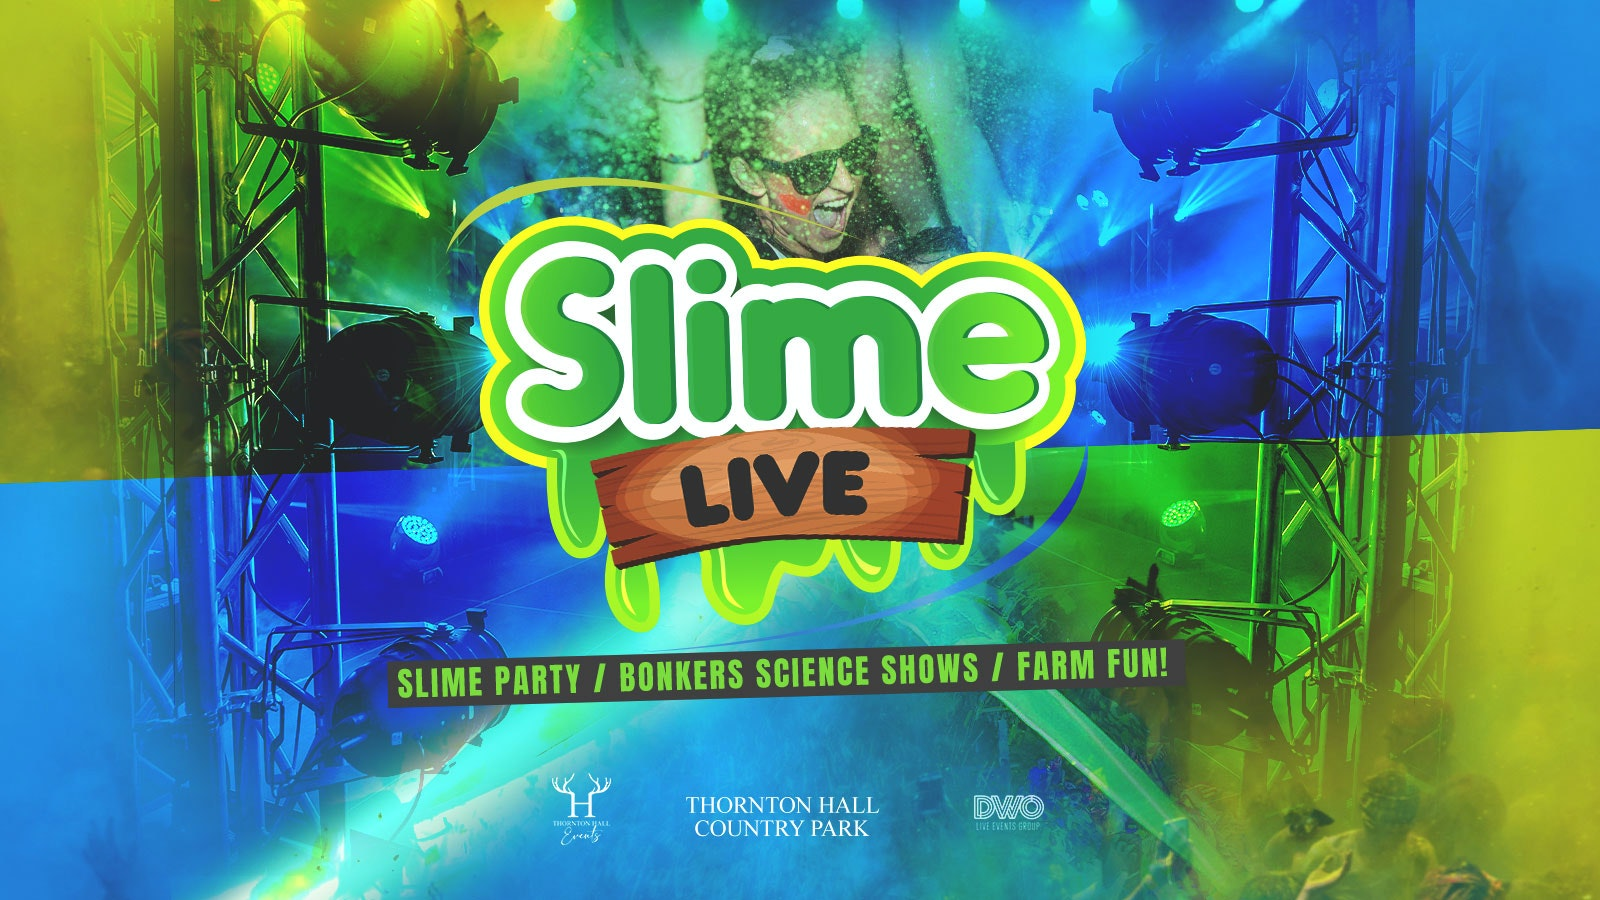 Slime Live (including Farm Park Entry) – Saturday 21st August – All Day Ticket